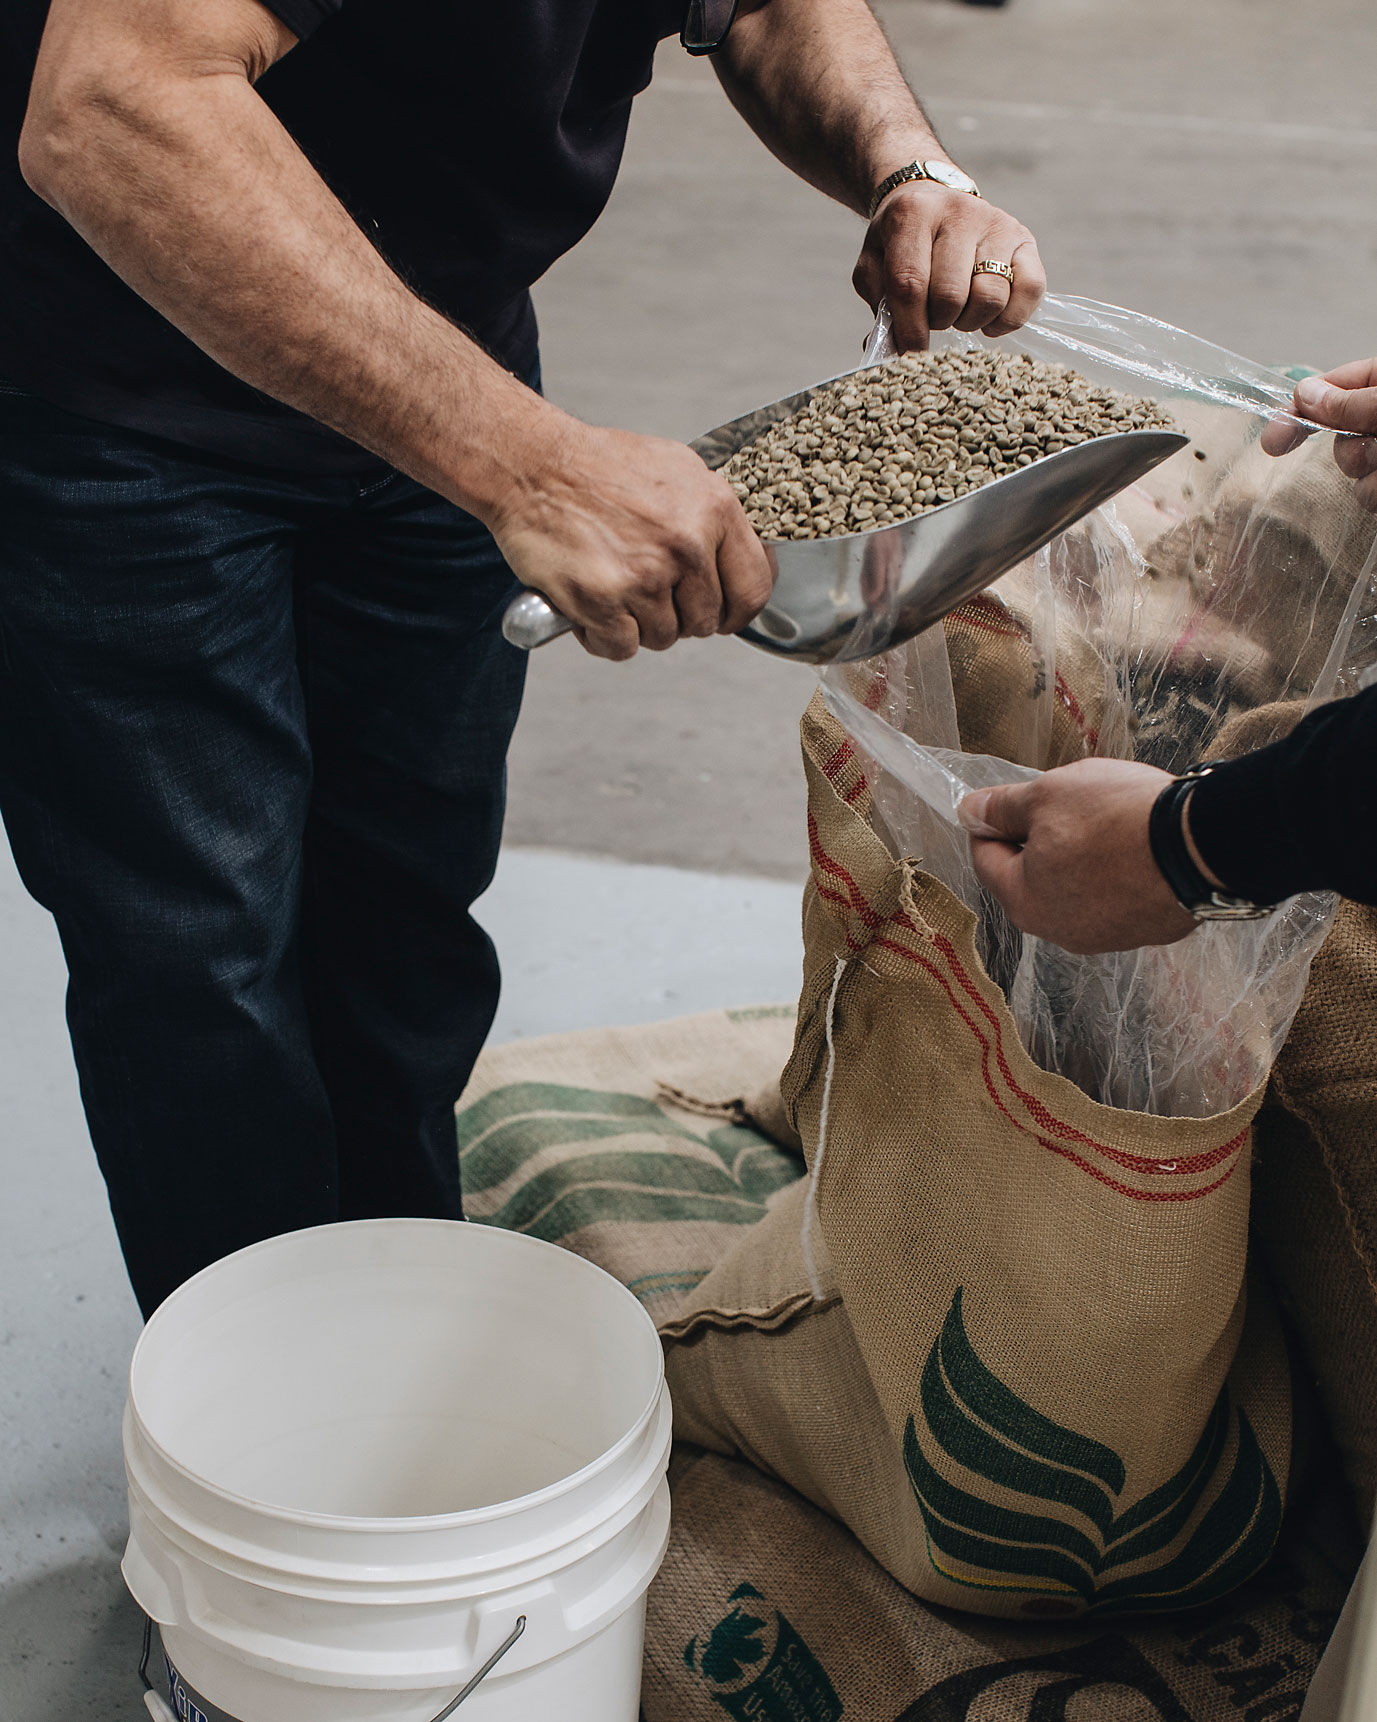 Inspired by the experiences of a life well-lived, our beans are blendedand roasted with equal measures art and science to create coffeeyou will obsess over. -